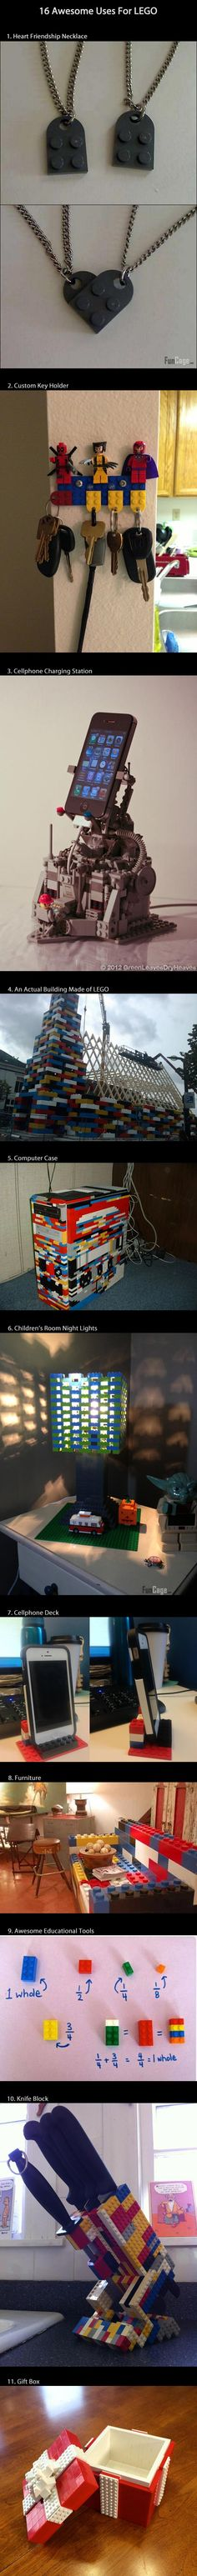 11 awesome uses for lego